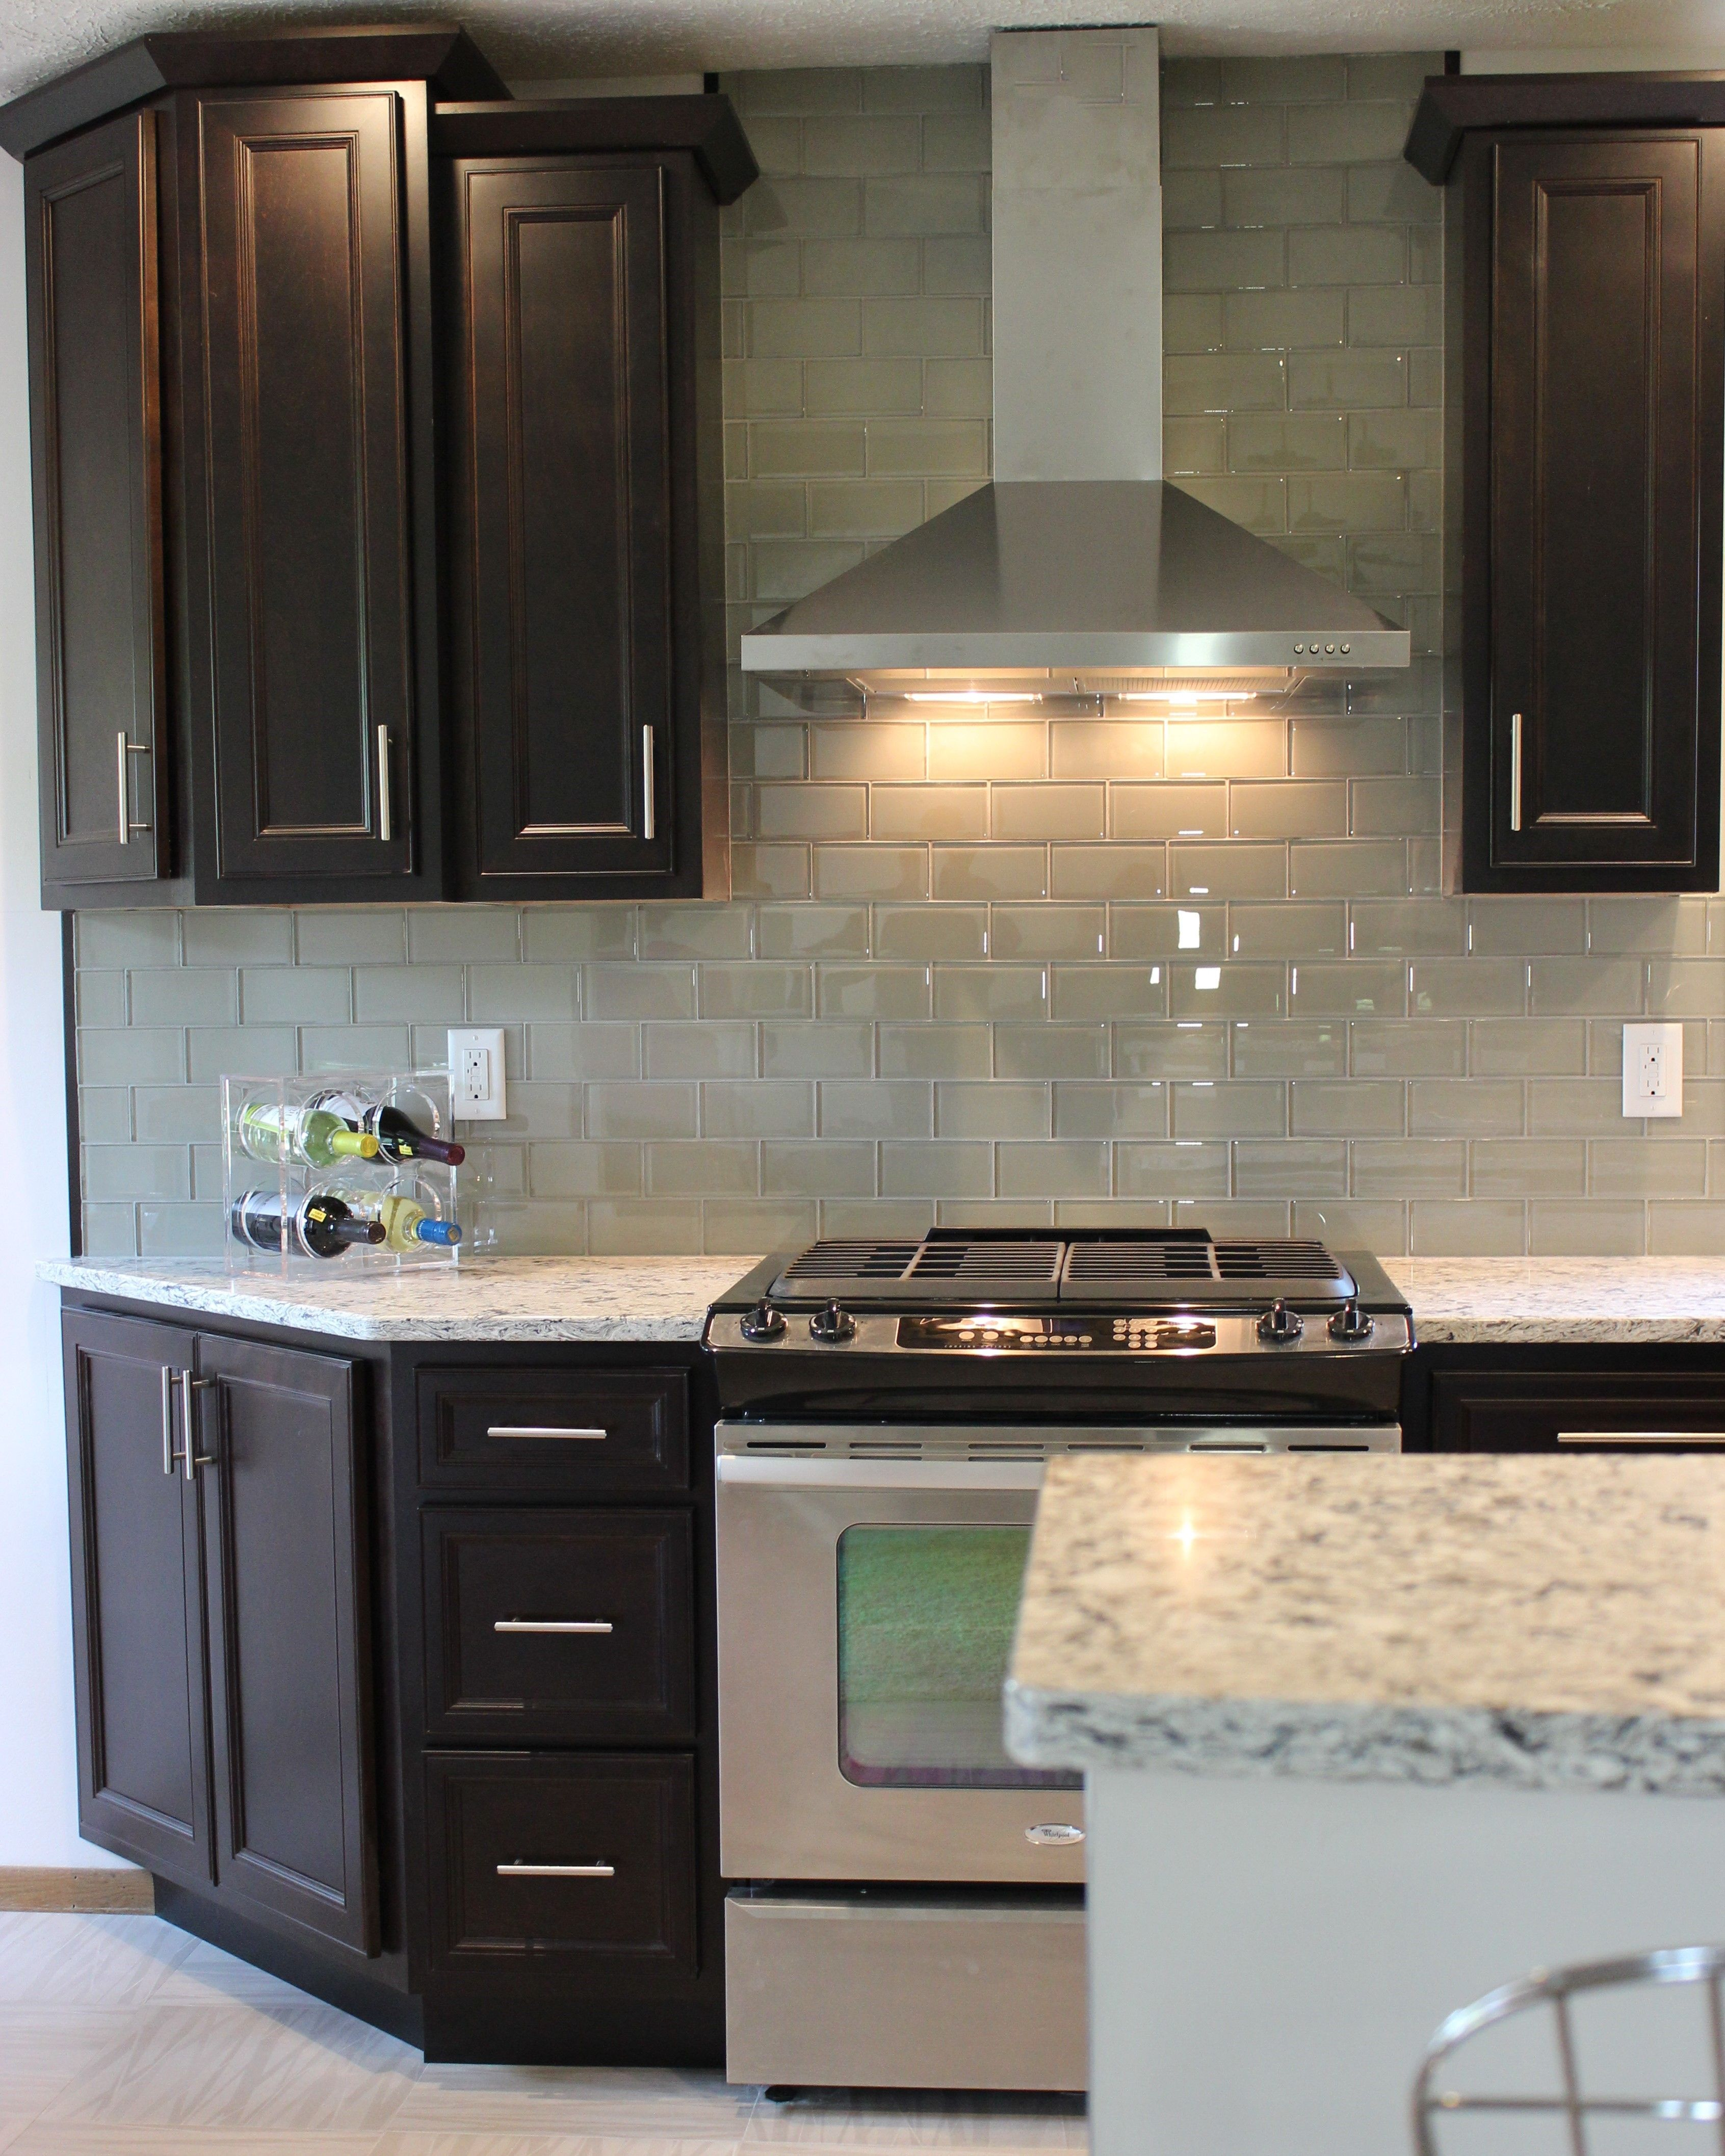 A Stainless Steel Chimney Style Hood Surrounded By Glass Tile And Dark Java Cabinetry Villagehomestor Kitchen Remodel Kitchen Dark Kitchen Cabinets